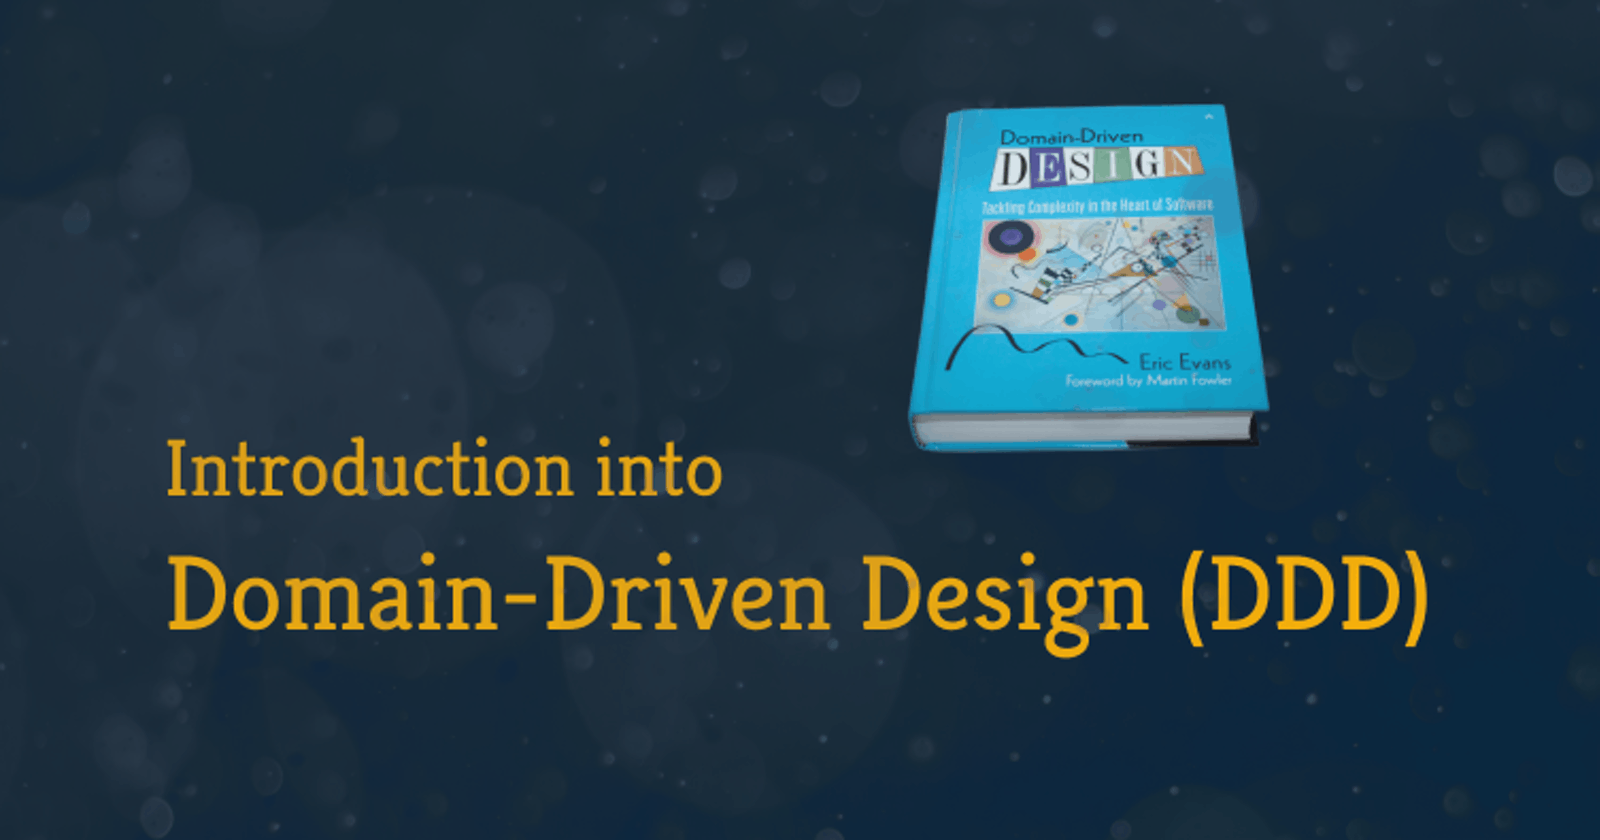 Introduction into Domain-Driven Design (DDD)